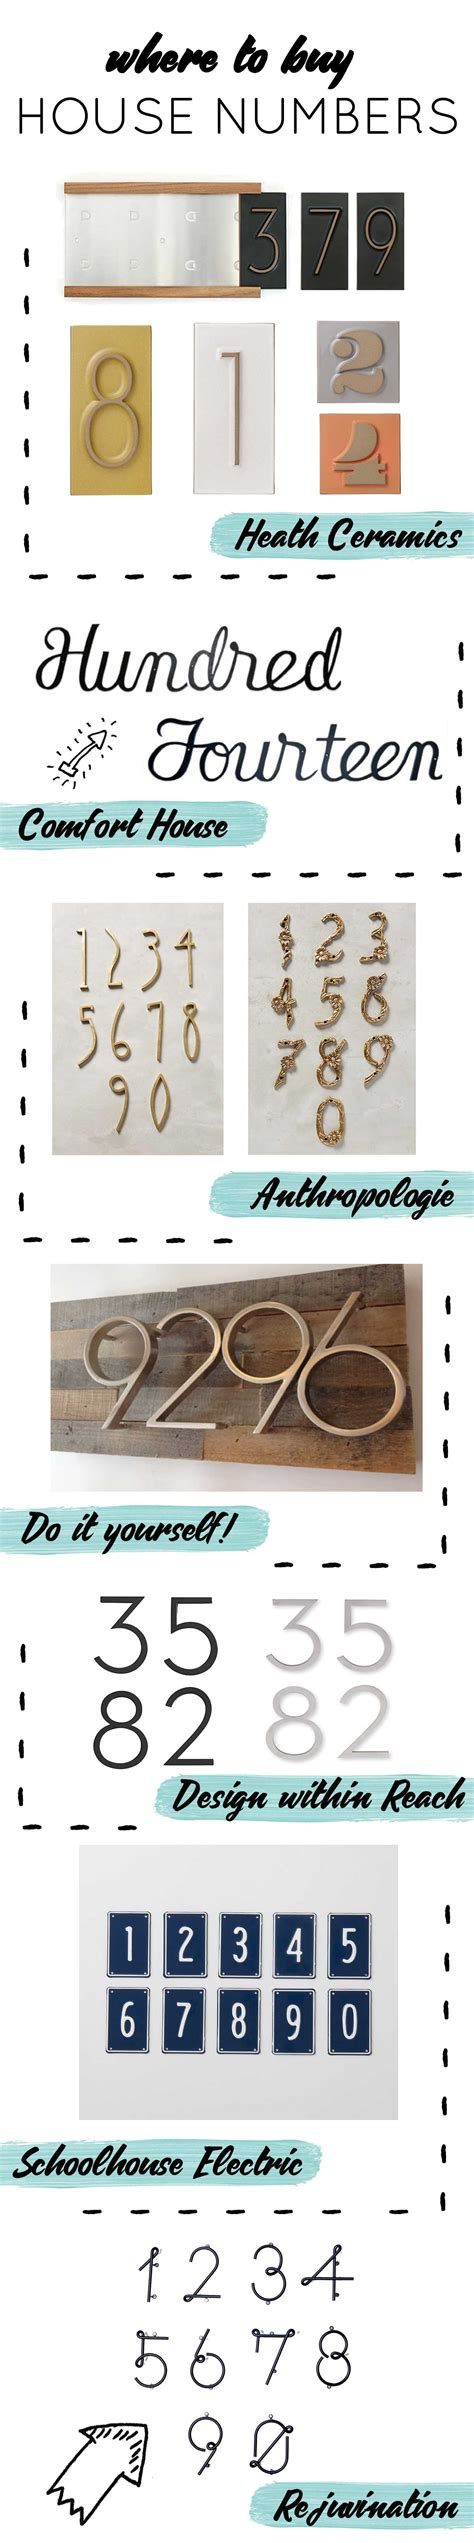 where to buy house numbers house numbers